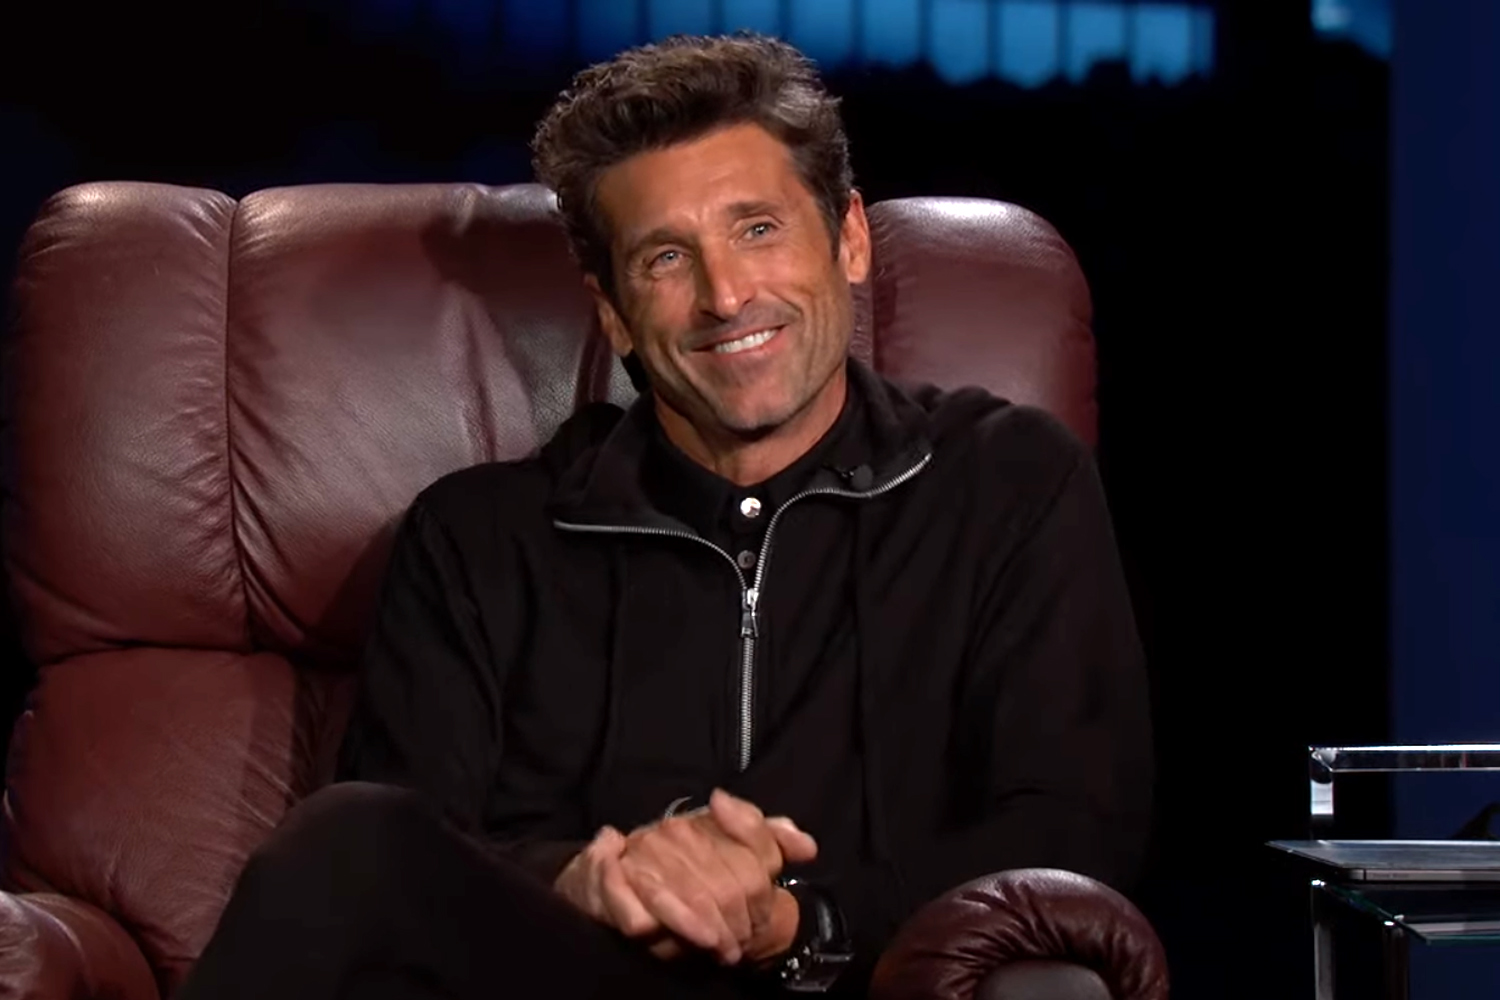 Patrick Dempsey on Quarantine Prom, Meeting Ruth Bader Ginsburg & Driving in Rome